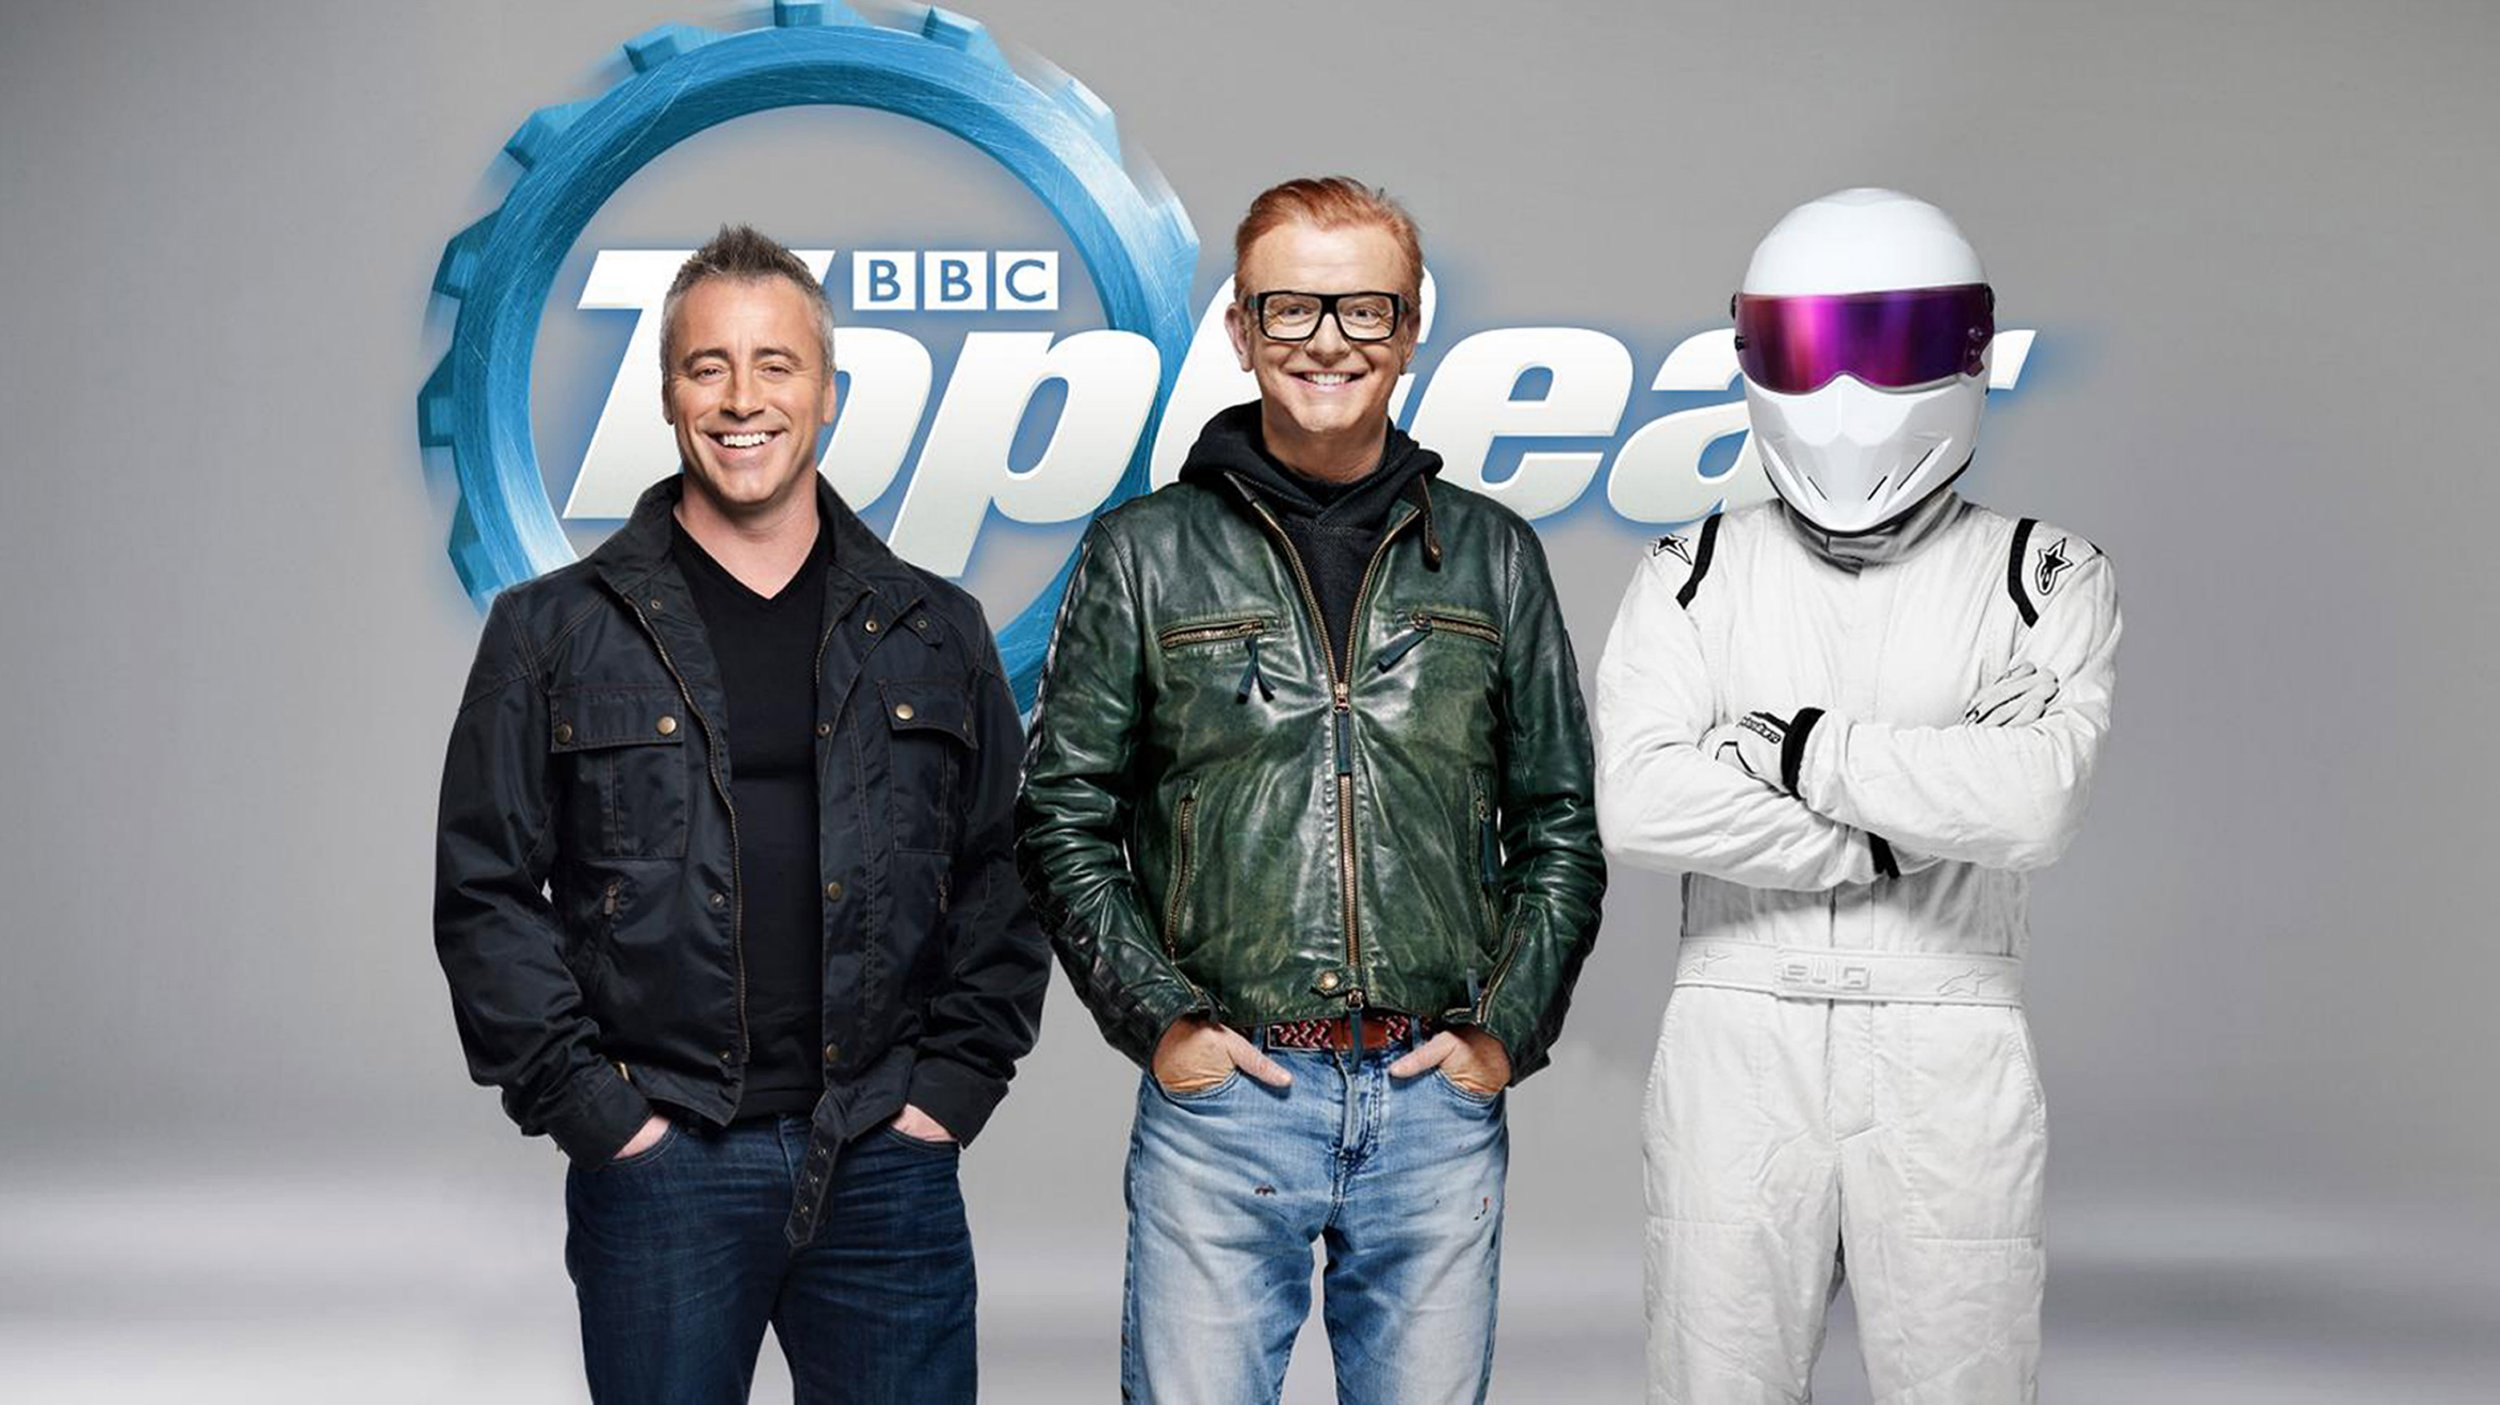 """Former Friends star Matt LeBlanc is be one of the new presenters of Top Gear when the motoring programme returns to BBC Two in May. The US actor will be the show's first non-British host in its 39-year history. """"Matt's a lifelong fellow petrolhead and I'm thrilled he's joining Top Gear,"""" said Chris Evans of his new co-host. Picture: BBC/ Universal News And Sport (Europe) 04/02/2016."""